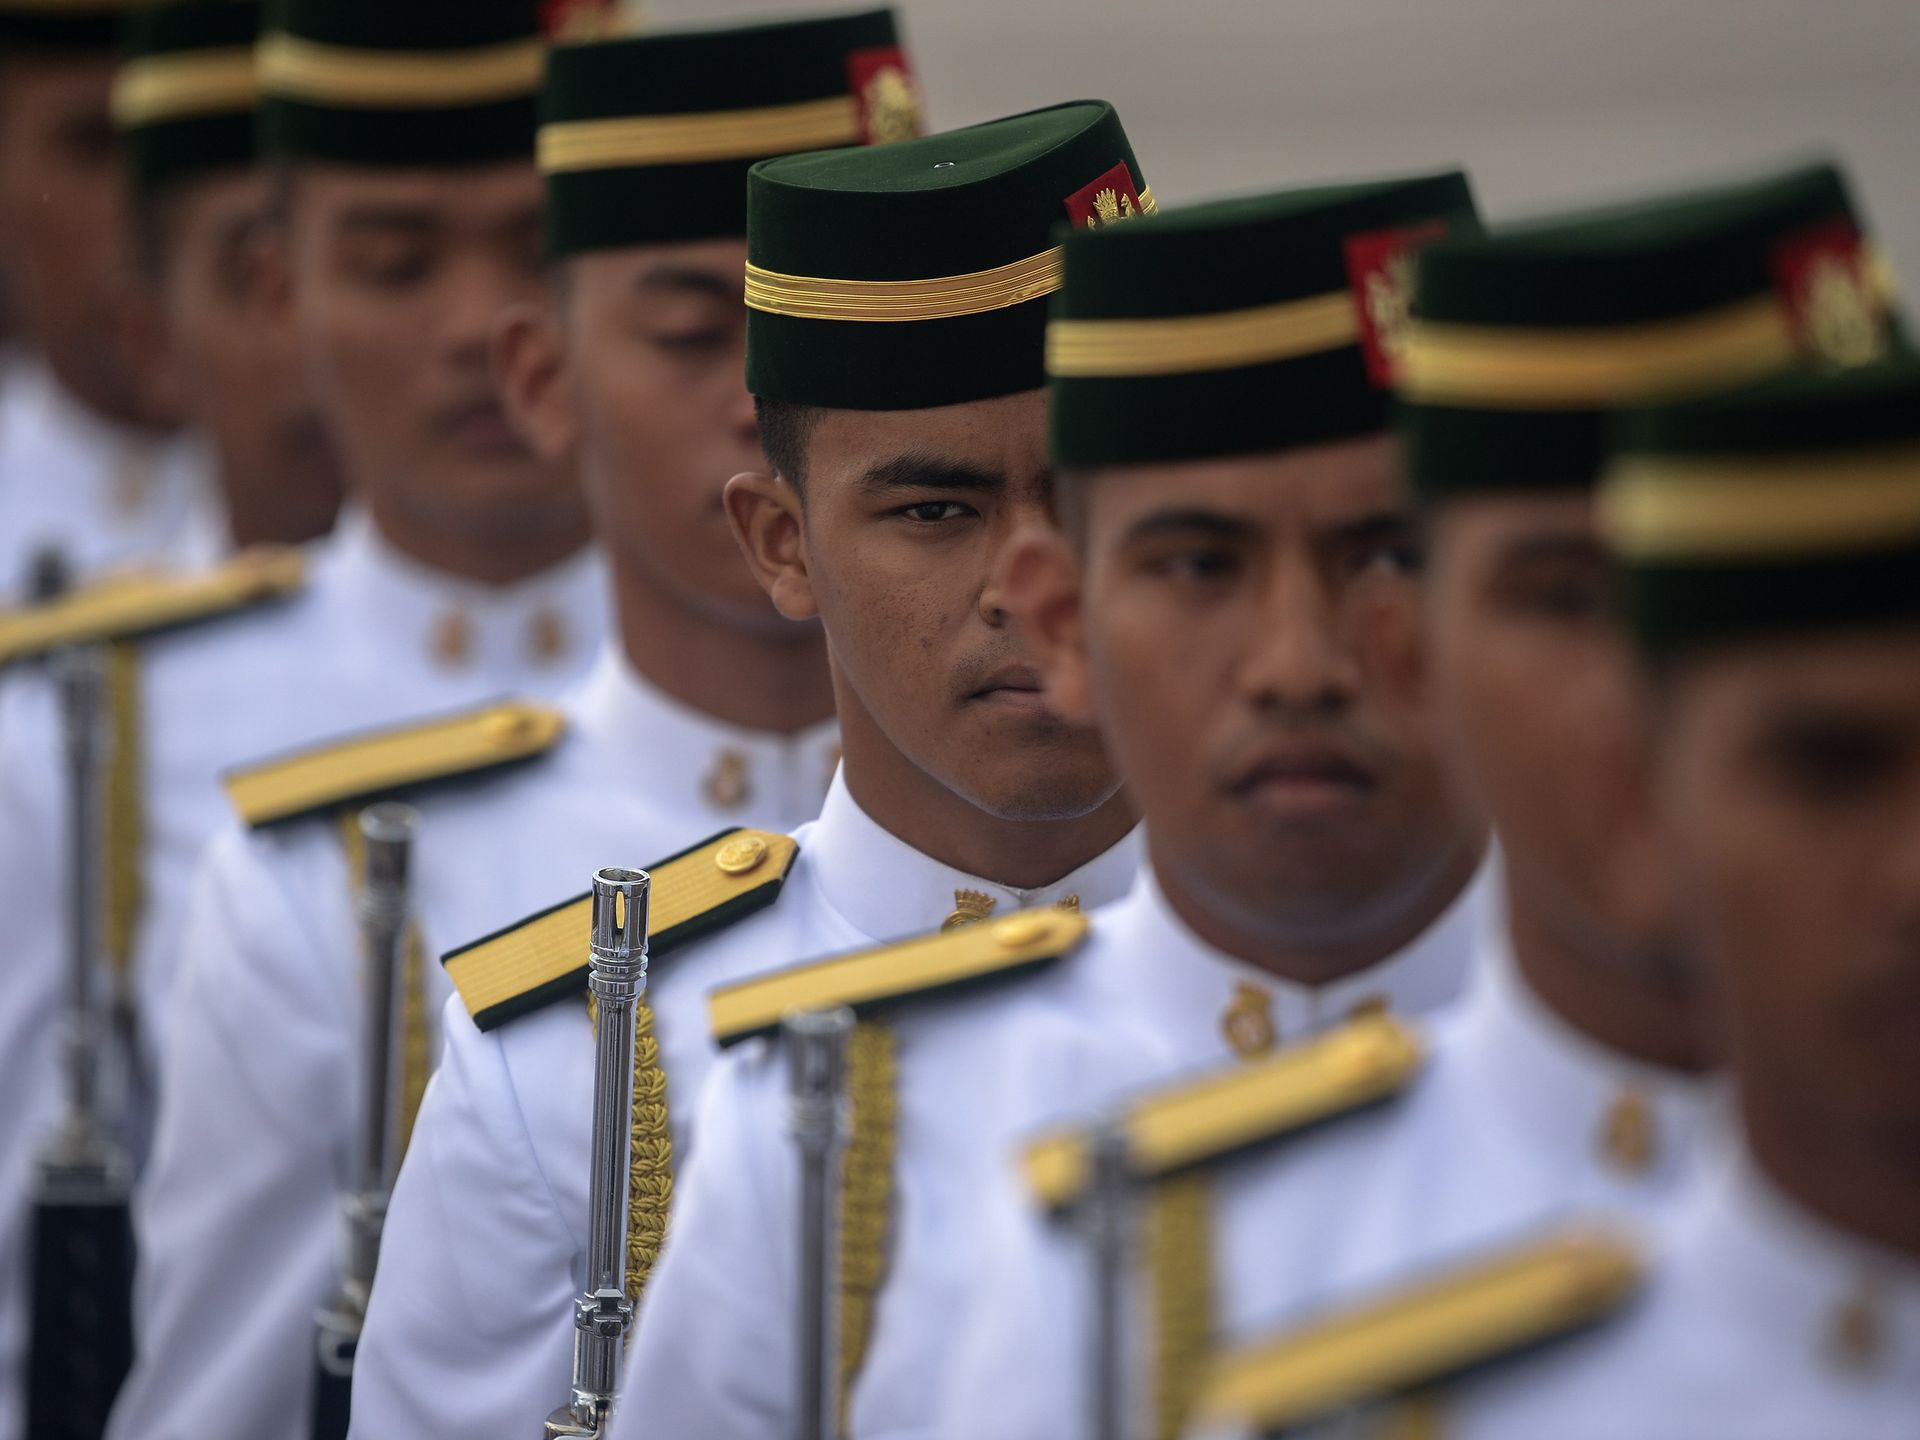 A Royal Malay Regiment honor guard marches in front of Air Force One ahead  of President